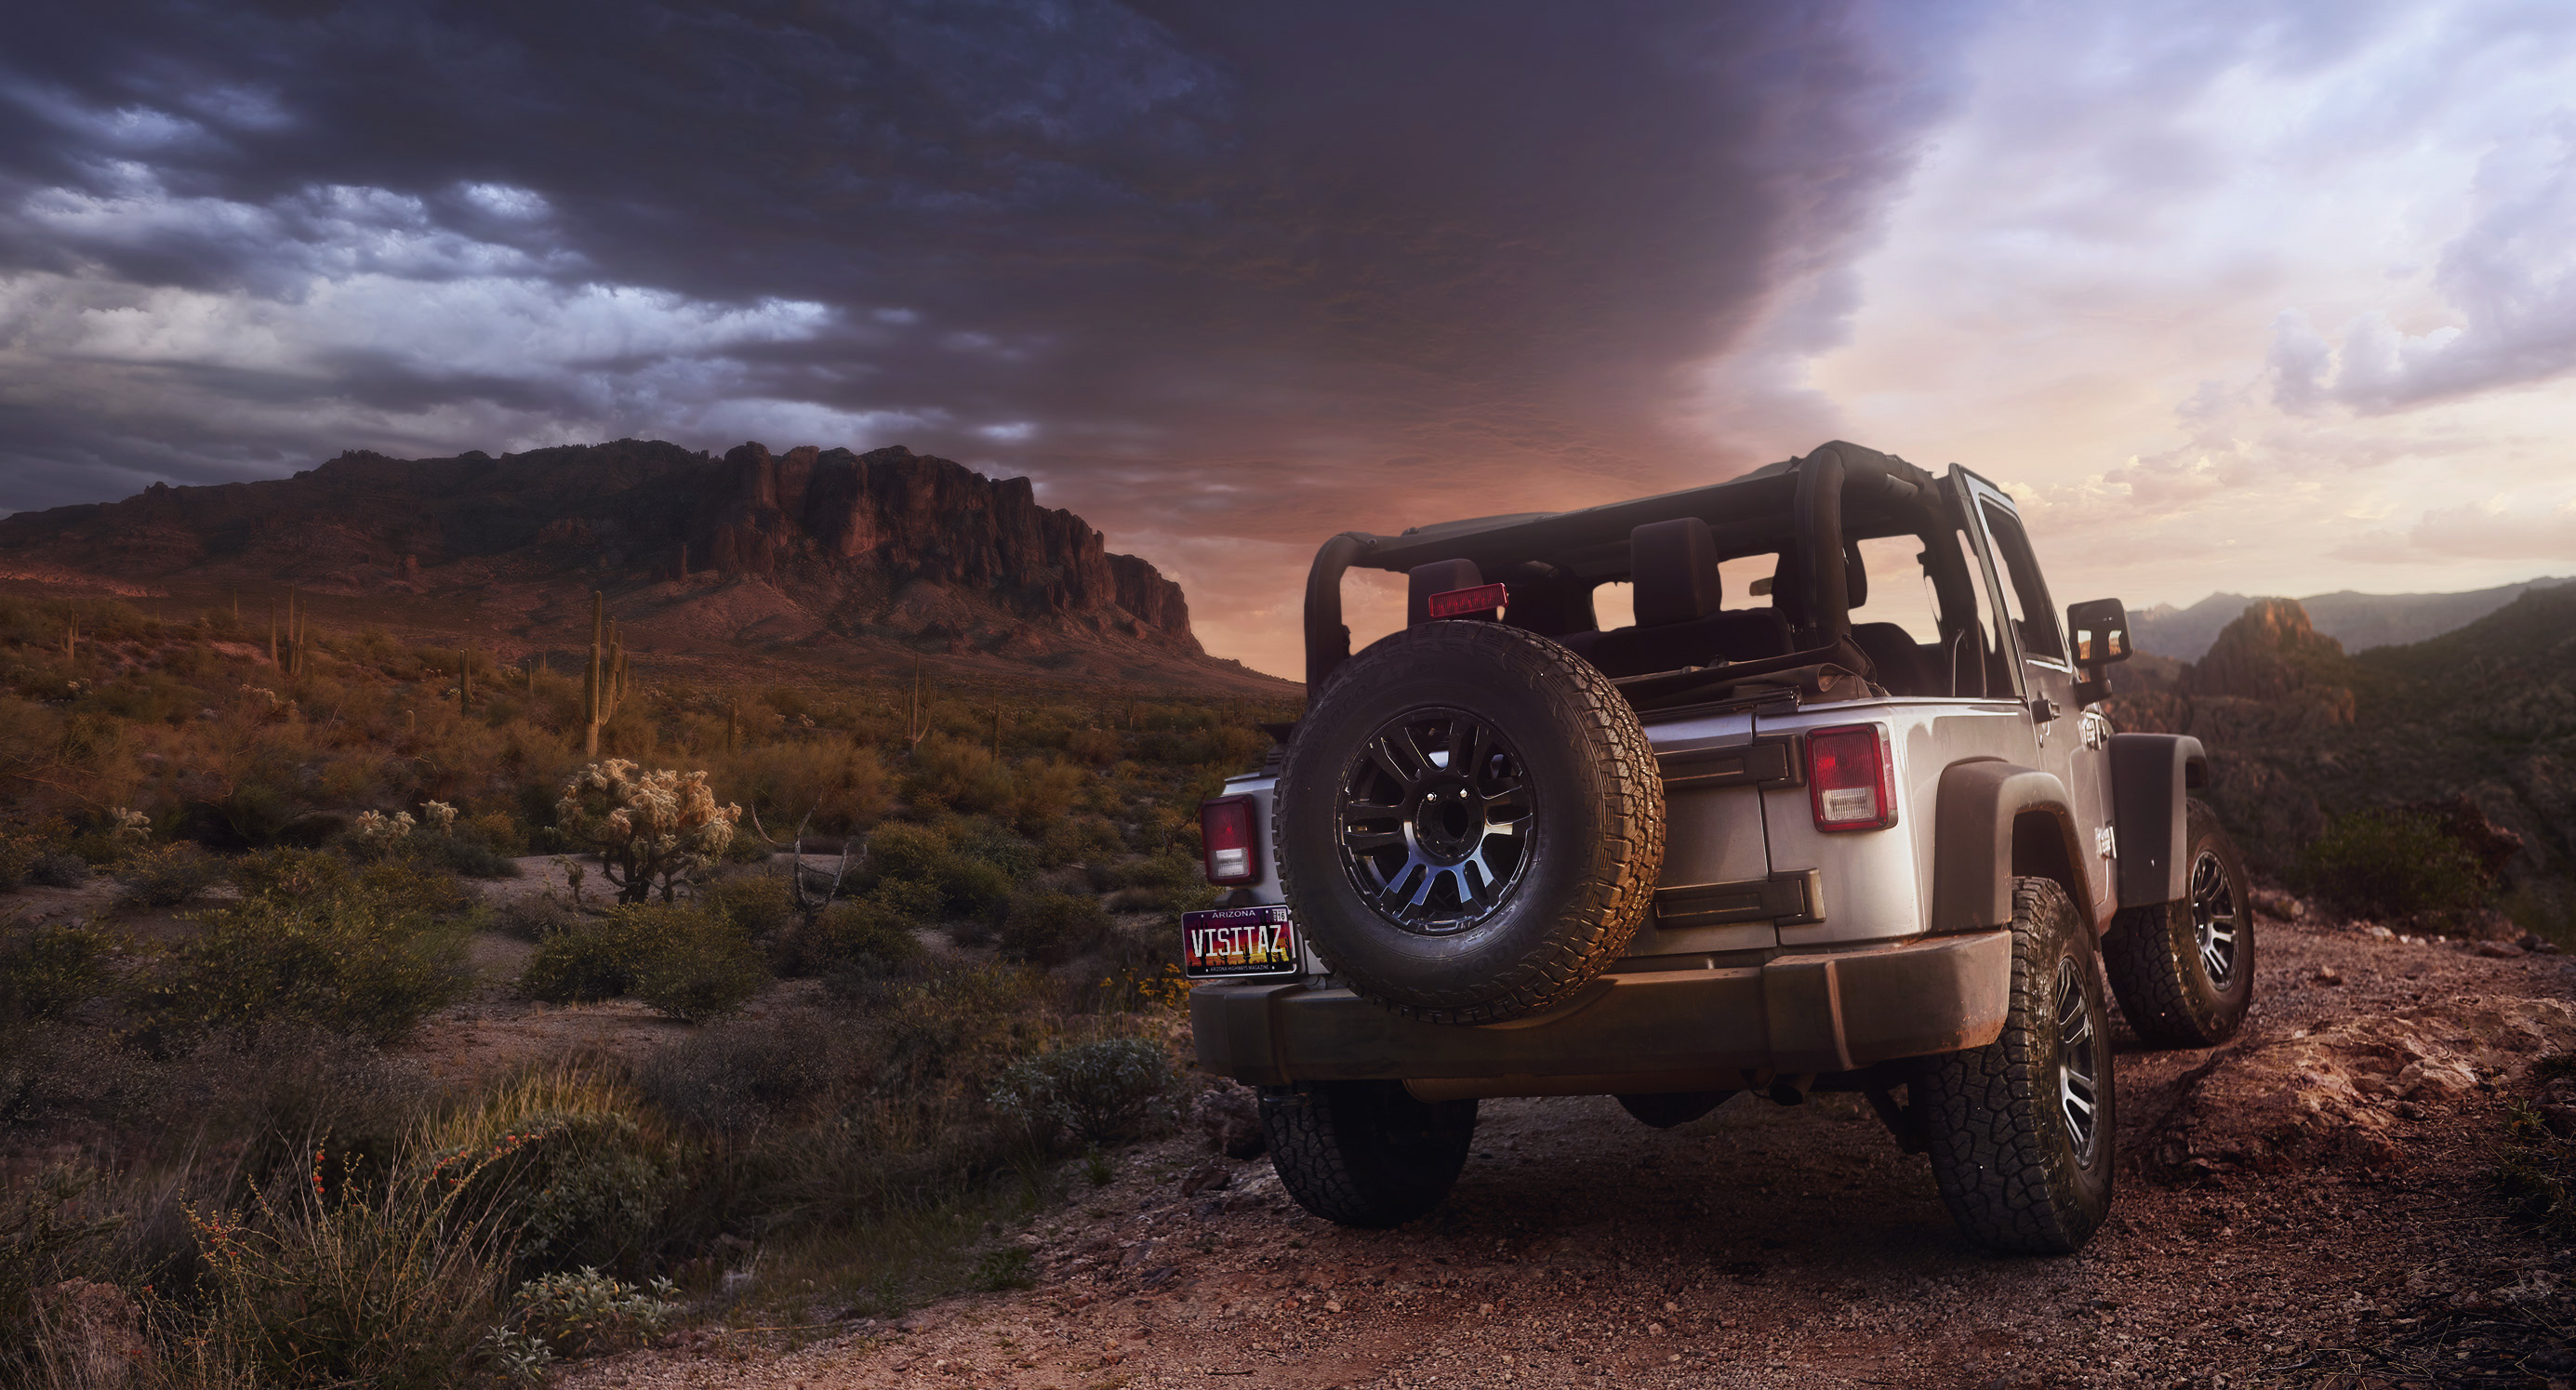 phoenix commercial photography, tucson commercial photography, phoenix corporate photographer, tucson corporate photographer, Jeep wrangler, jeep wrangler product photos, jeep wrangler photographer, jeep wrangler photography, photos of jeep wranglers